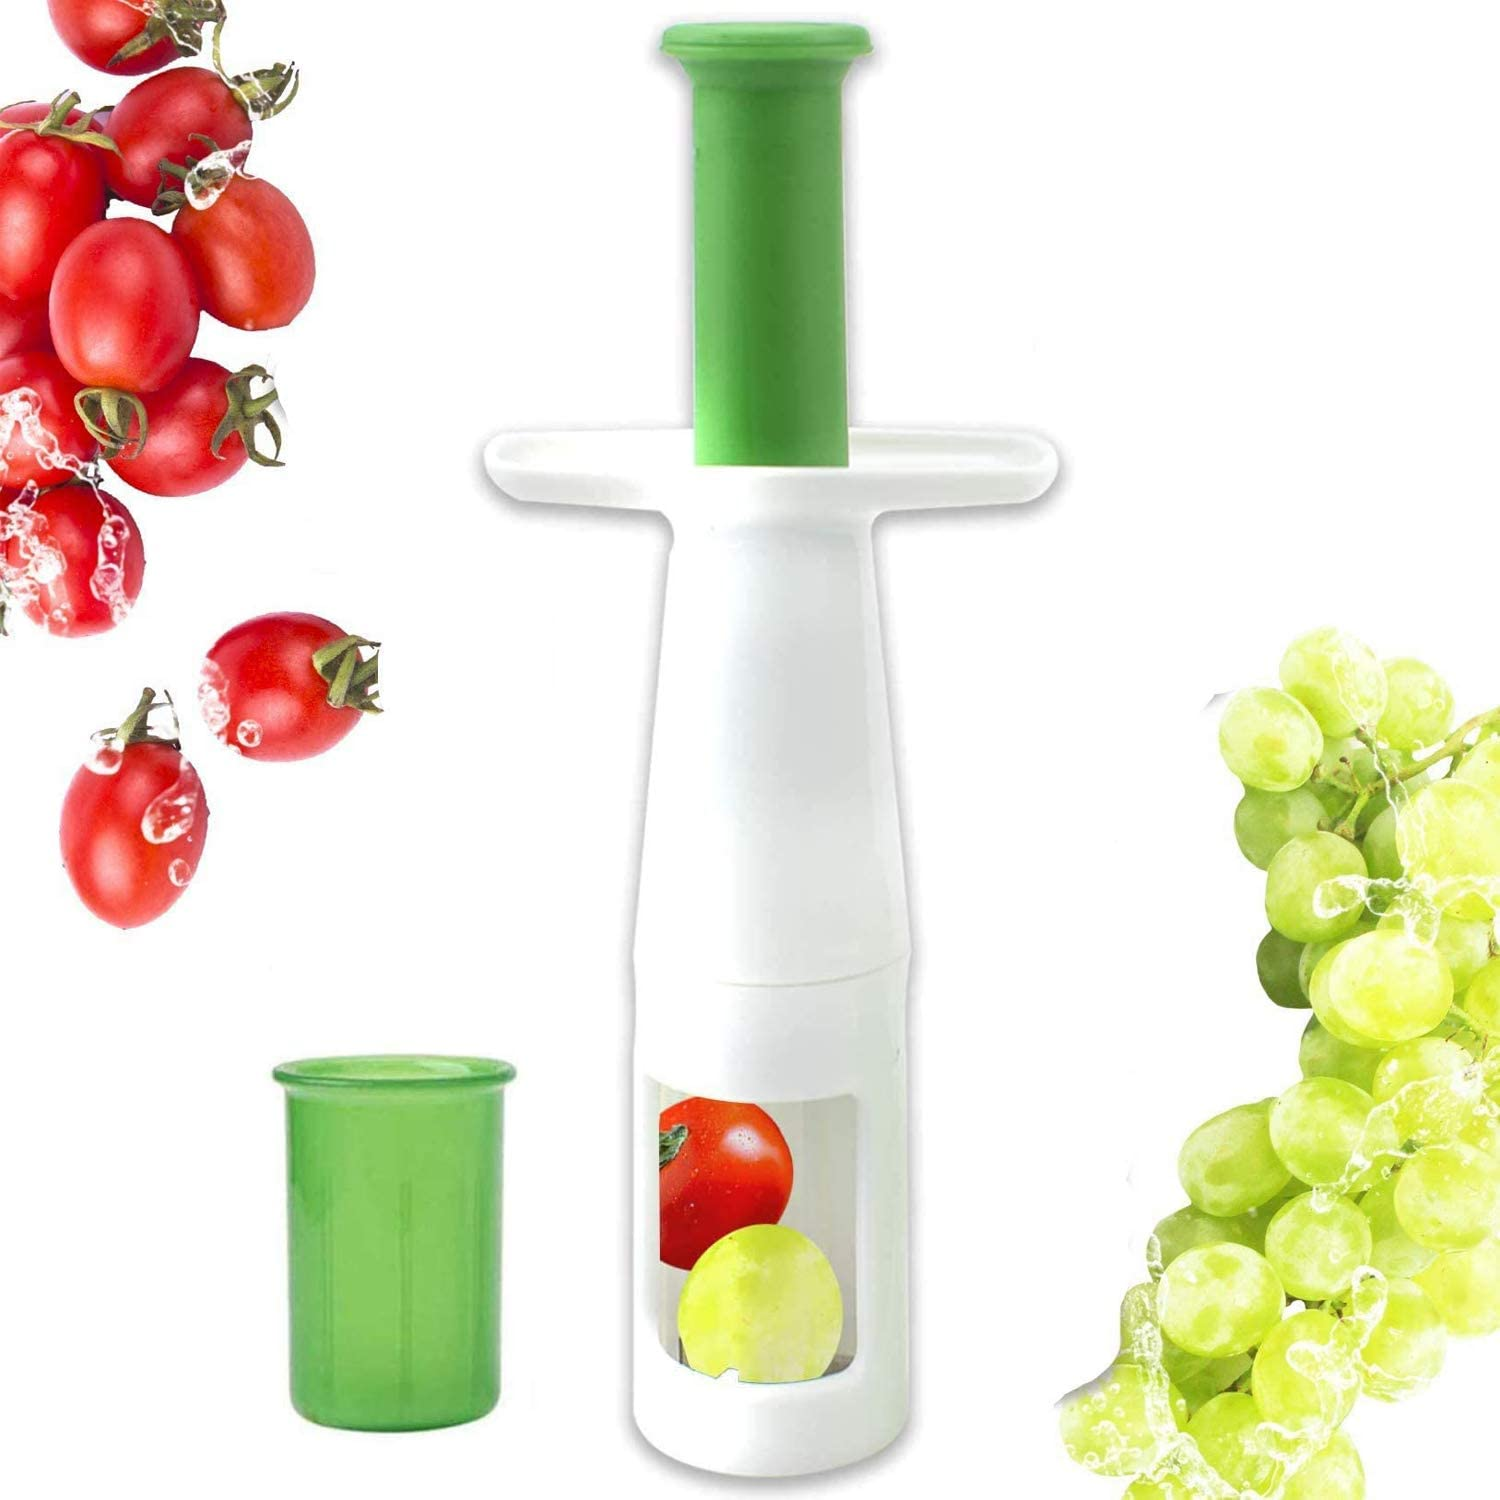 Grape Cutter, Tomato Cutter Fruit Vegetable Slicer for Creative Kids Party Kitchen Tool Accessories, Multifunctional Fruit Cut Tools for Salad Gadget and Baby Auxiliary Food